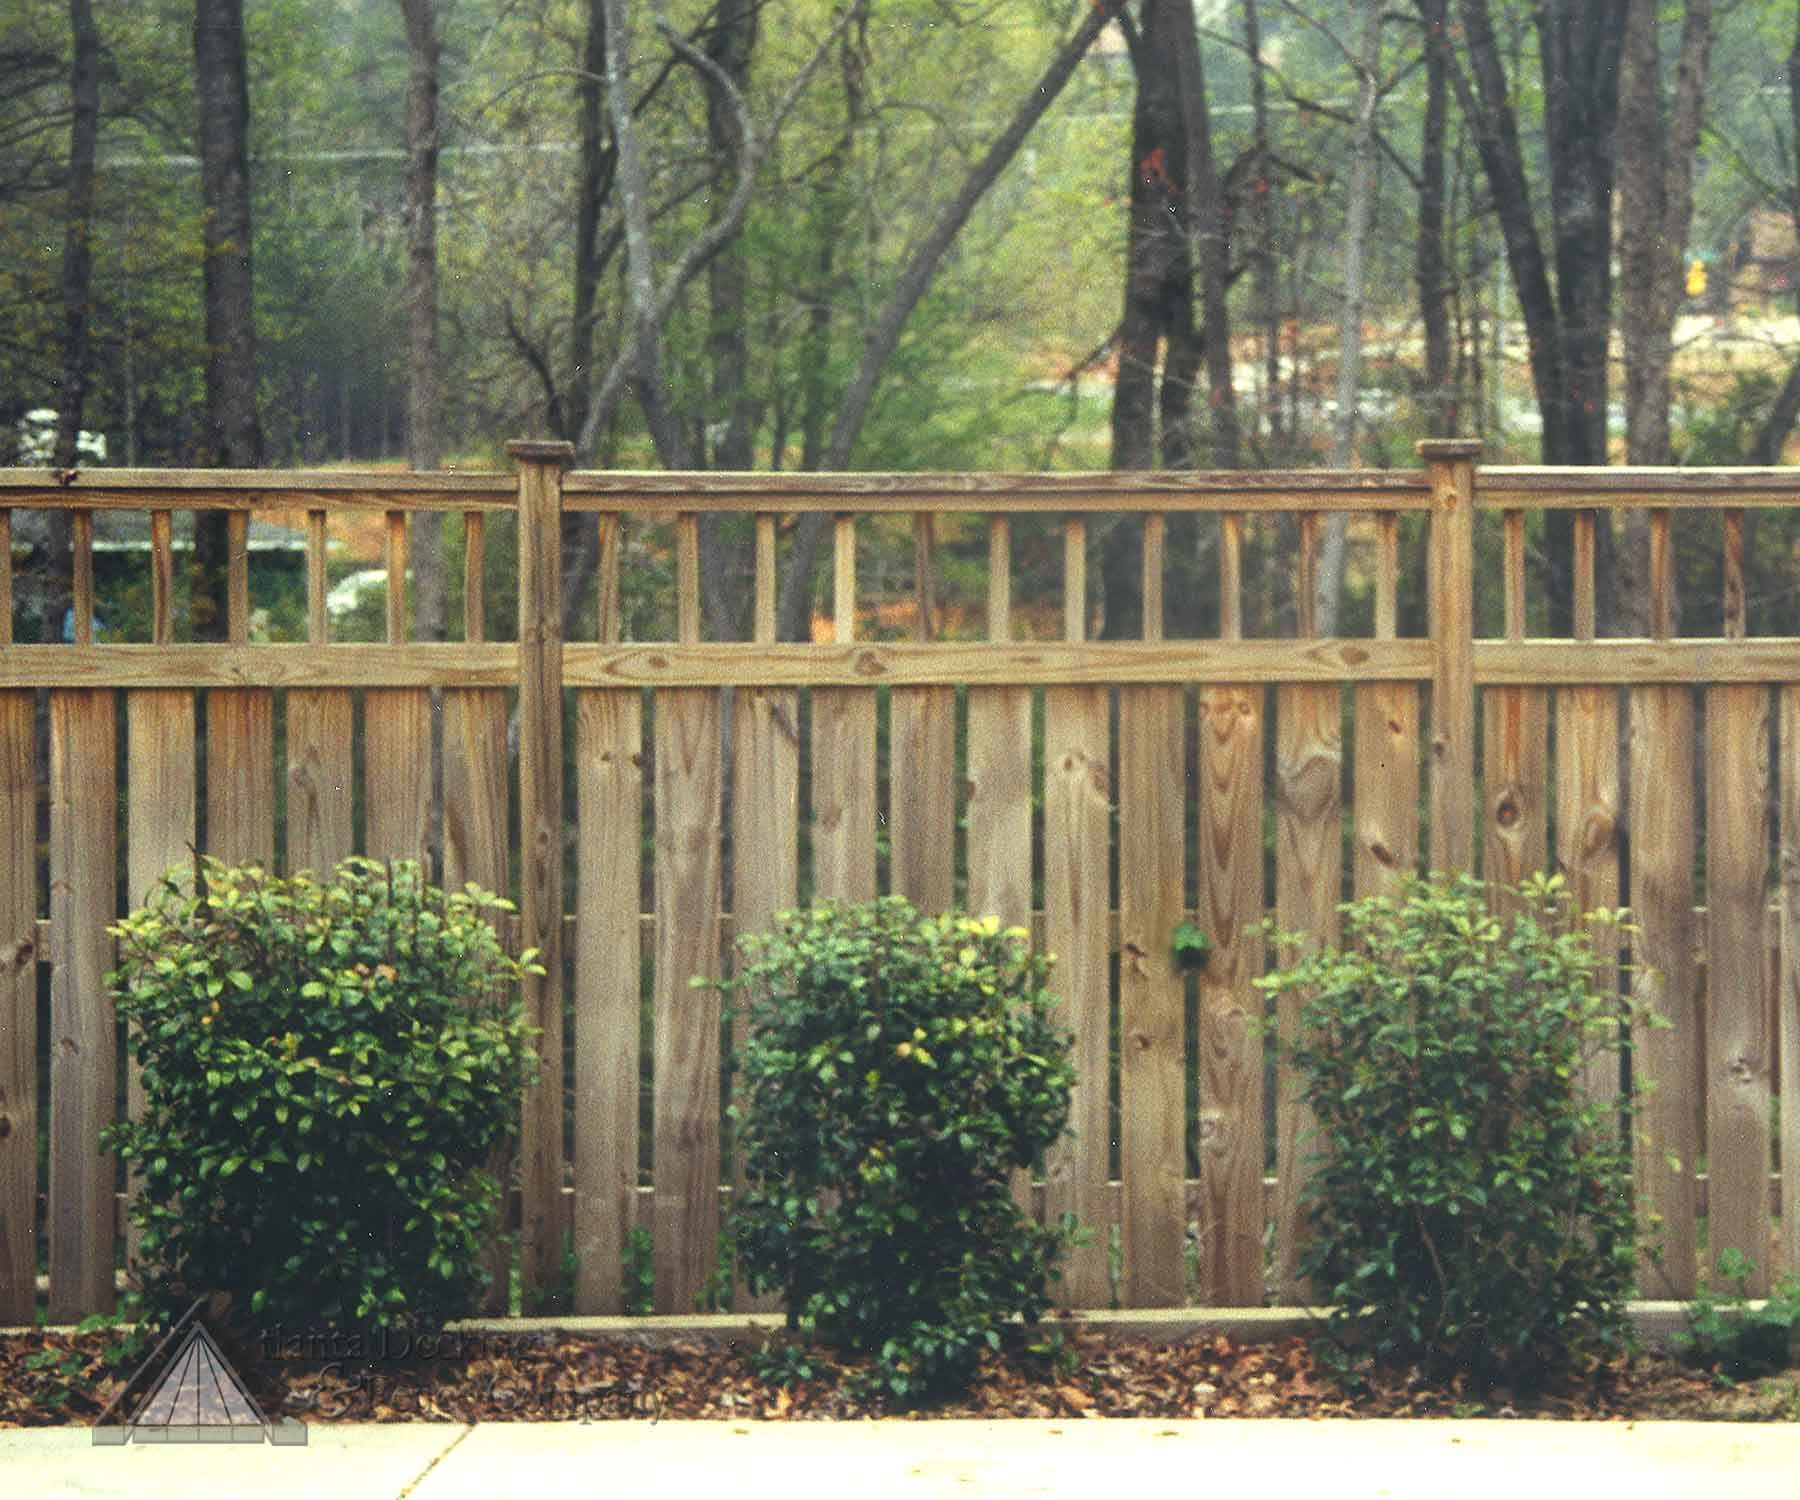 Privacy Fence Pictures Of Privacy Fence From Atlanta